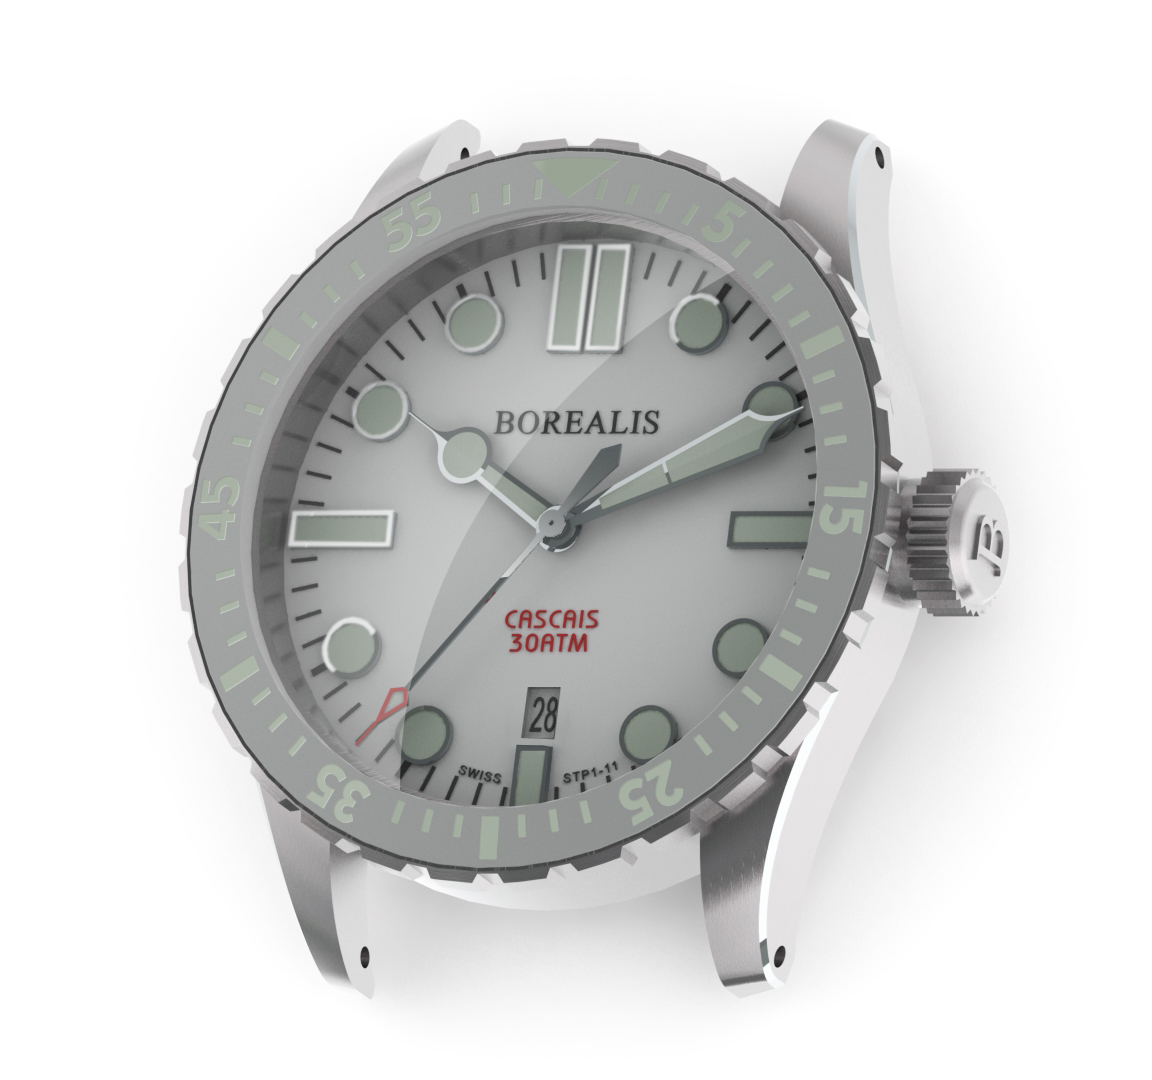 Borealis Cascais White Dial Cathedral Hands Date BGW9 Lume